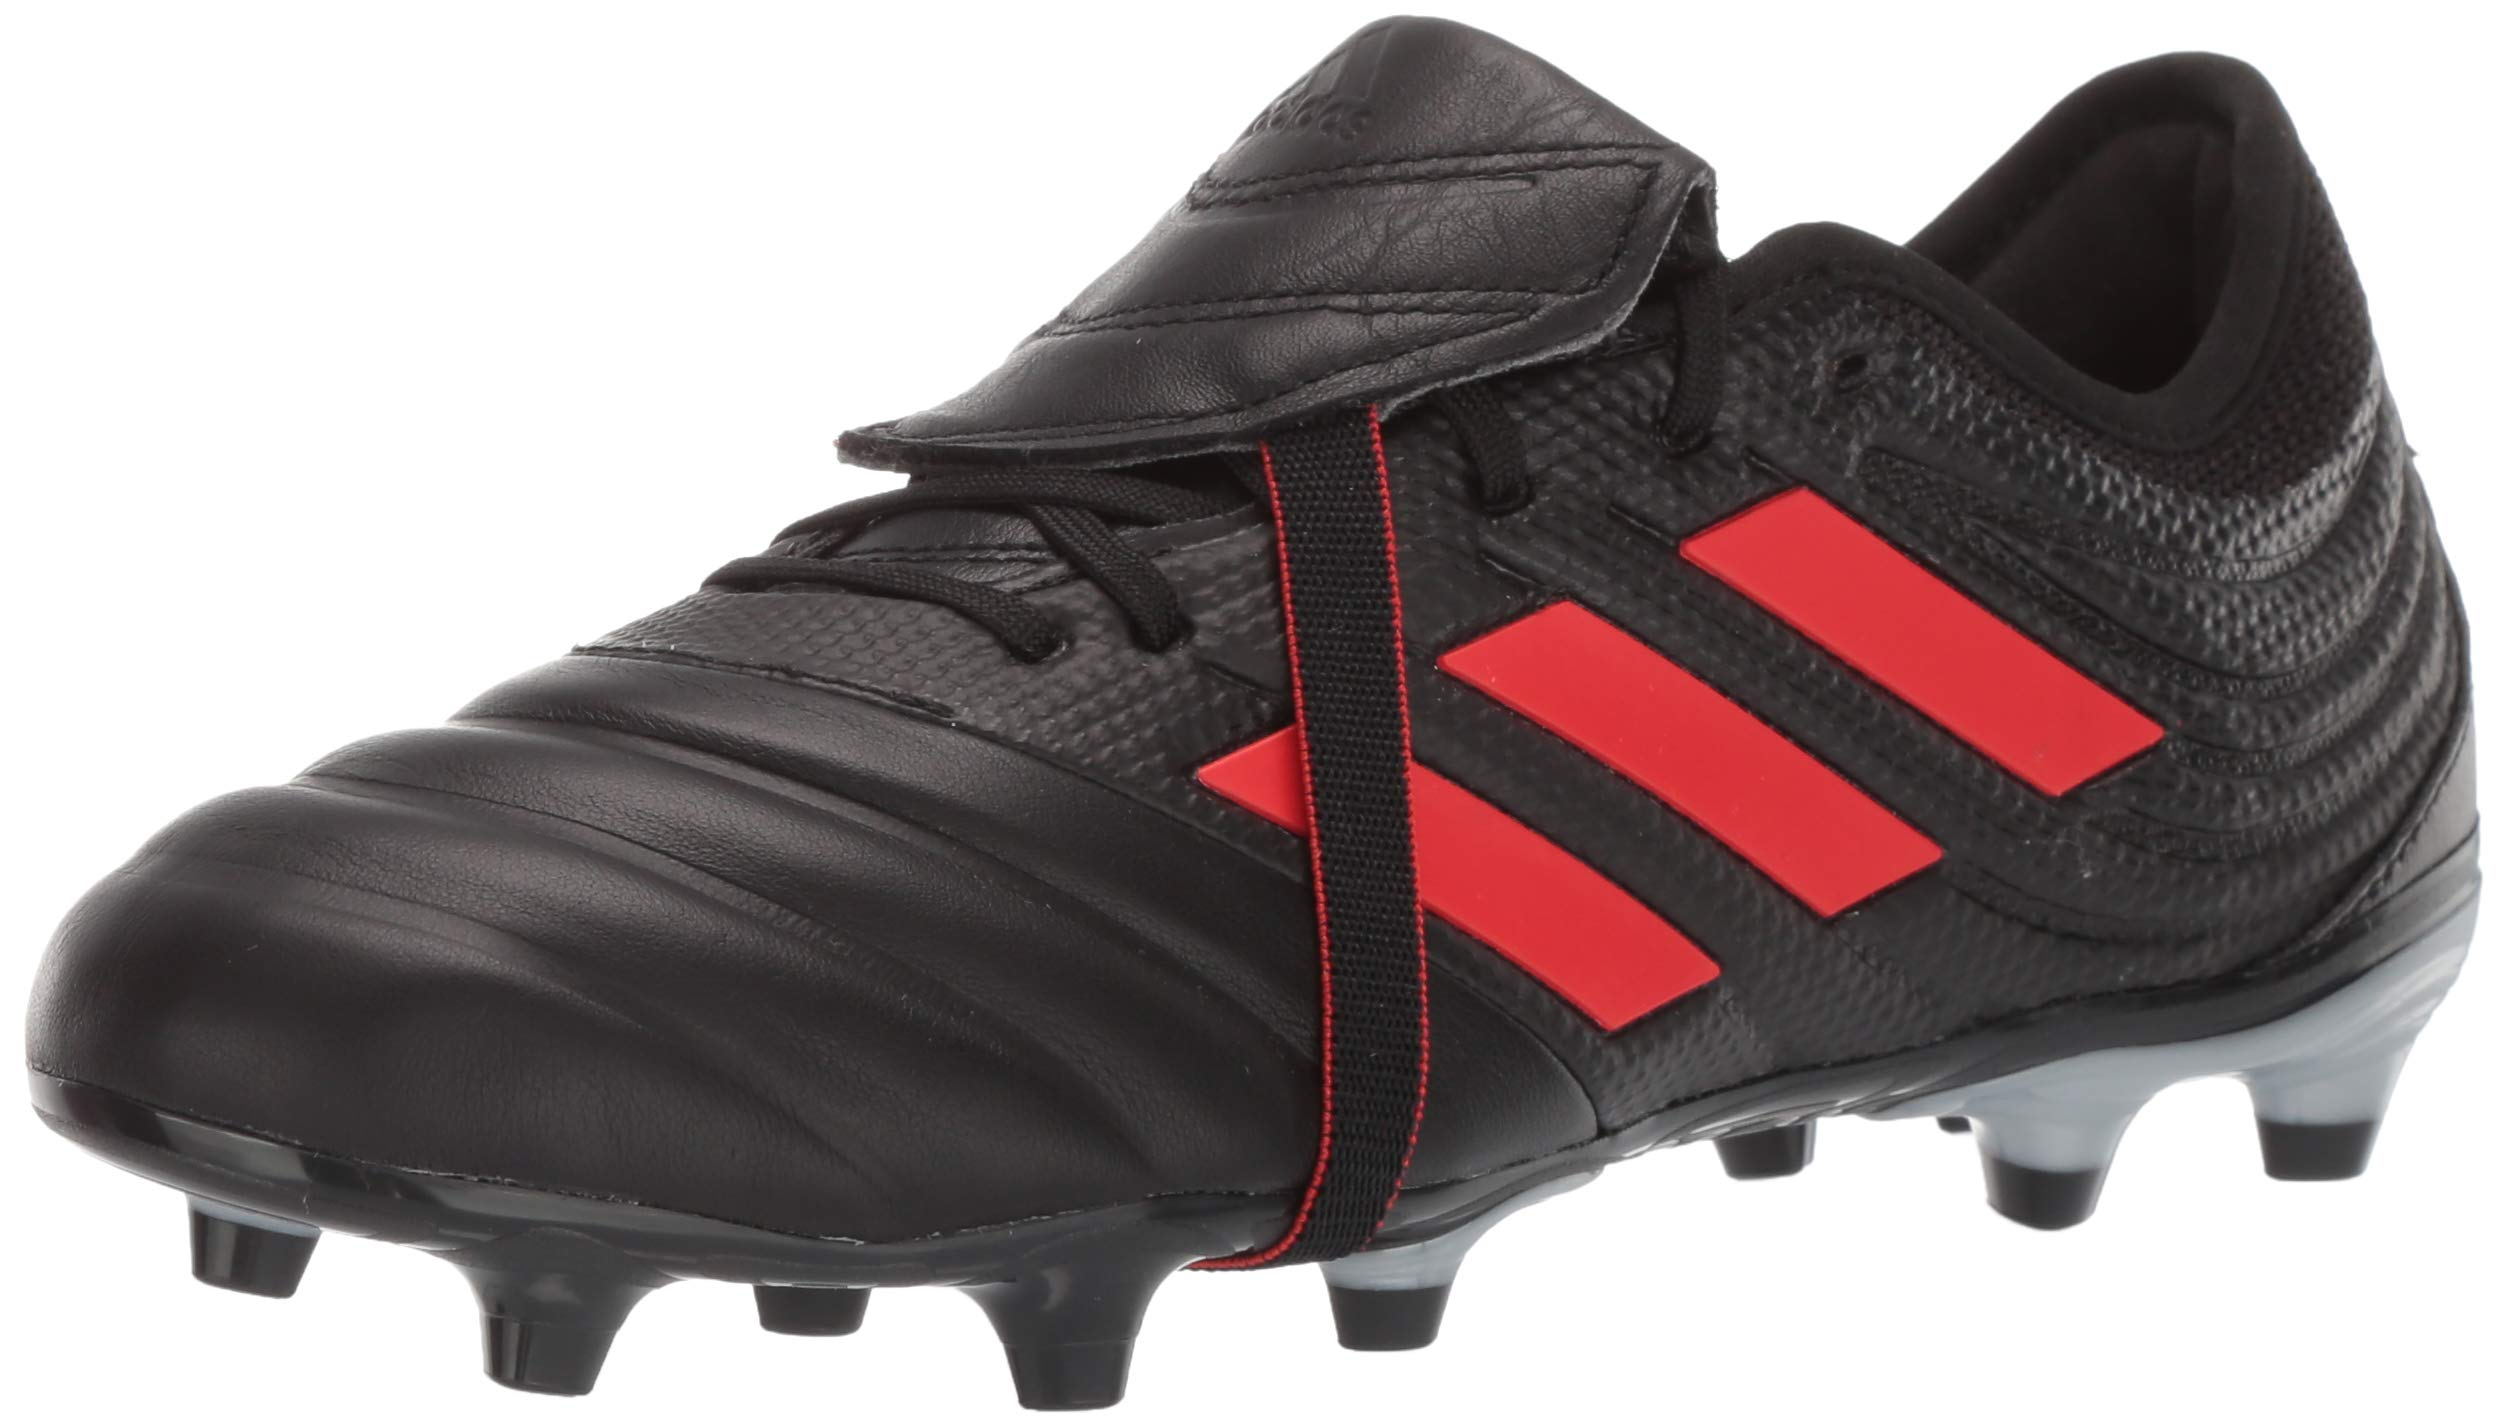 adidas Men's Copa Gloro 19.2 Firm Ground Soccer Shoe, Black/hi-res red/Silver Metallic, 7 M US